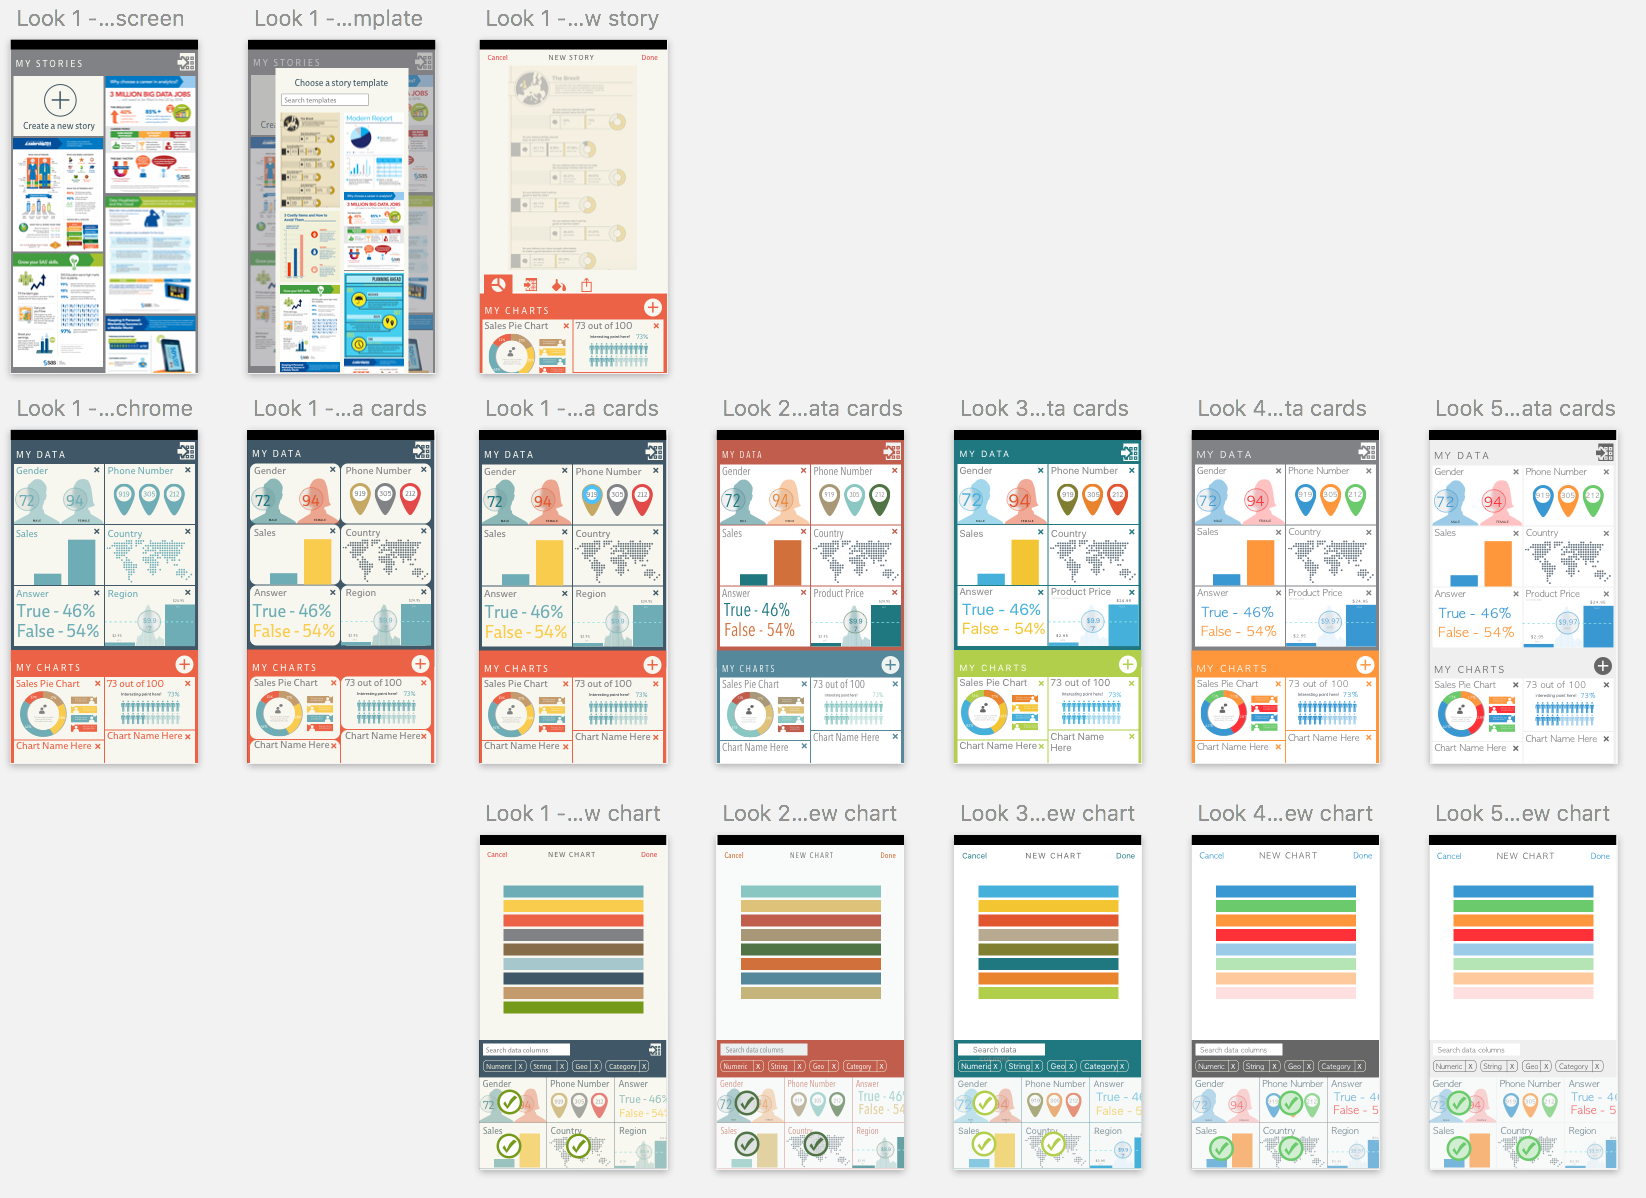 Project X: This is the Sketch file of multiple visual design options I created for a mobile app.